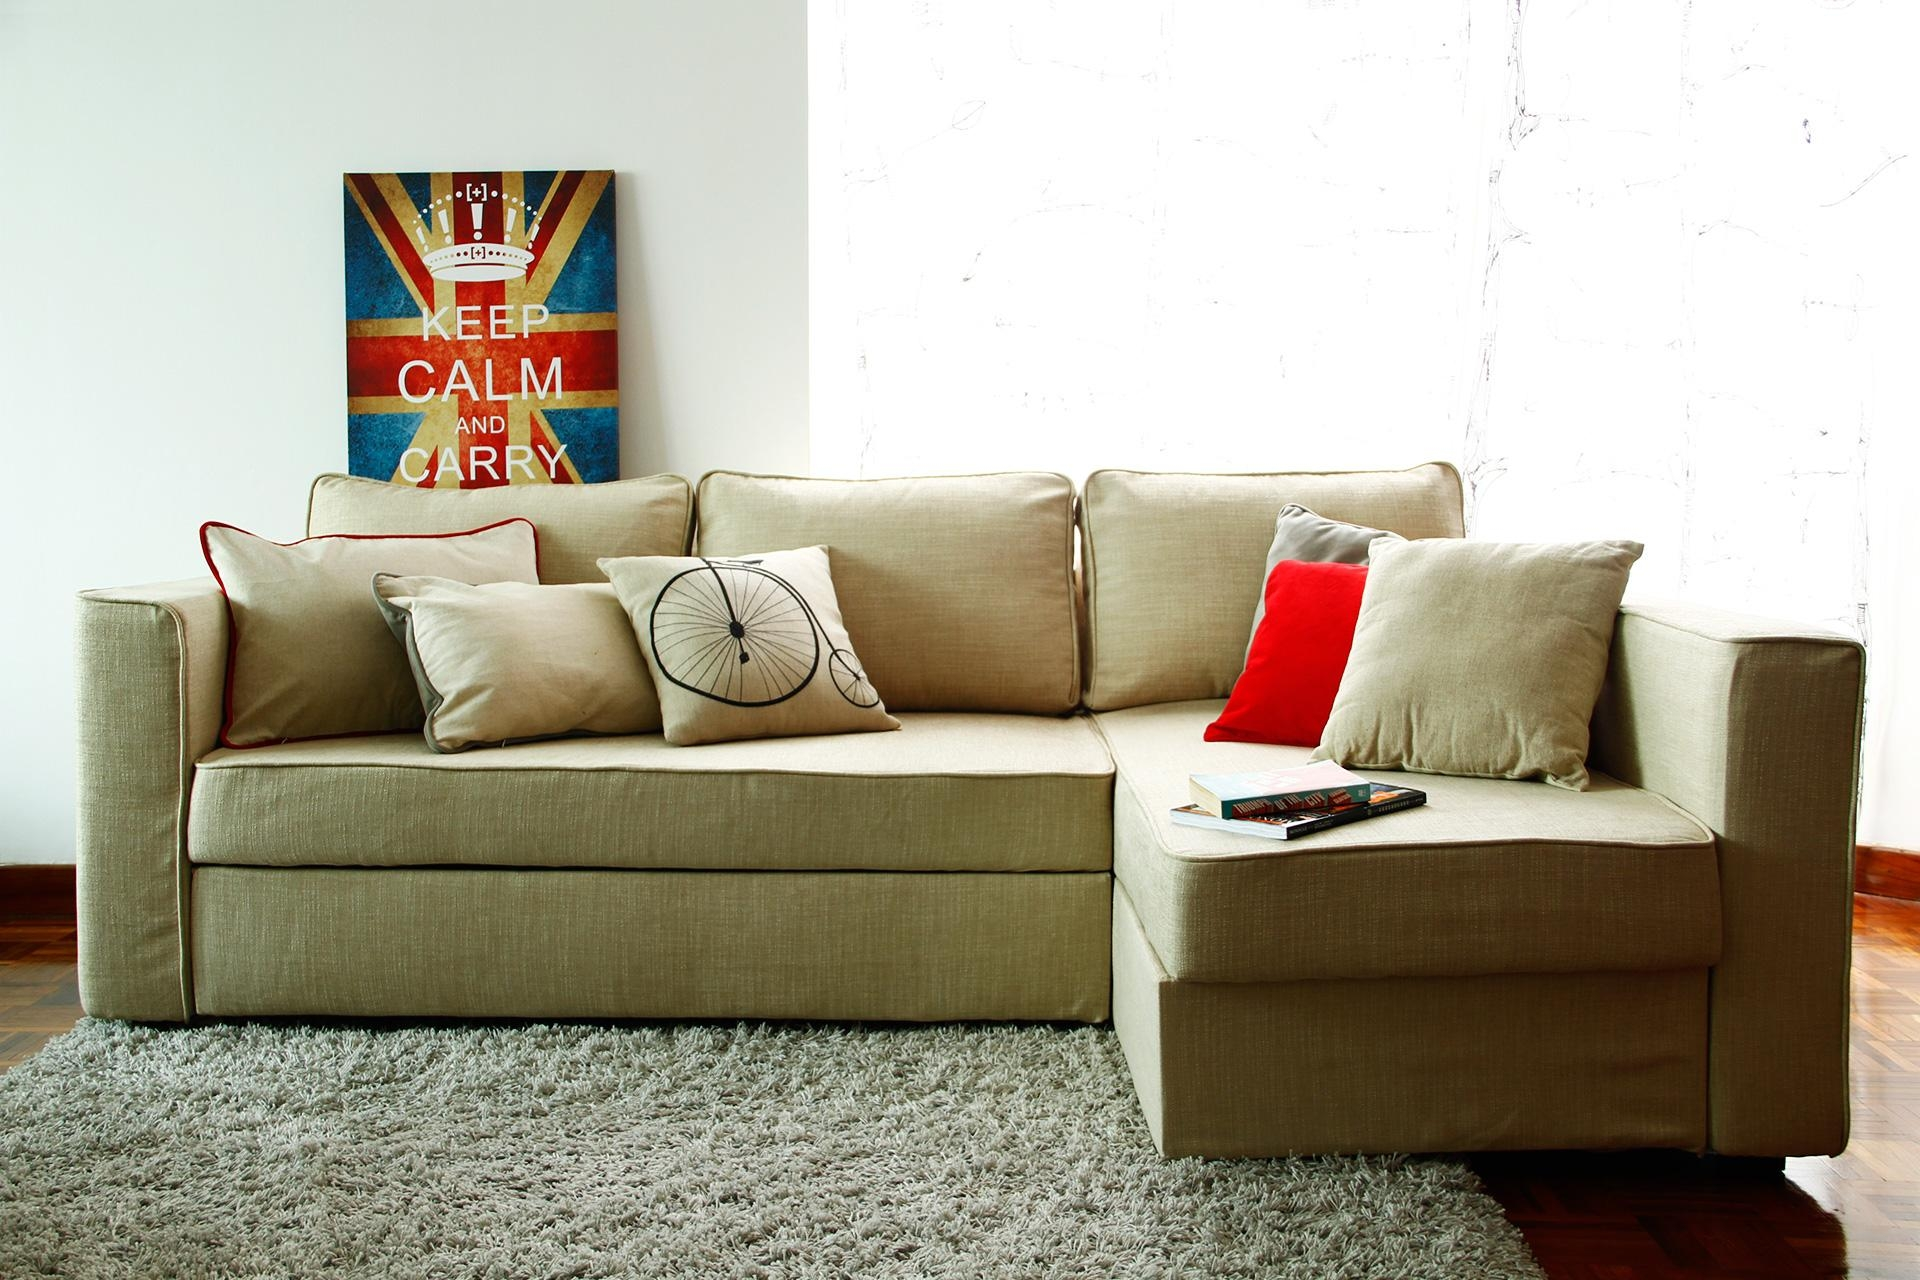 Can Your Sofa Be Slipcovered And Brought Back To Life? Pertaining To Camelback Sofa Slipcovers (Image 6 of 19)